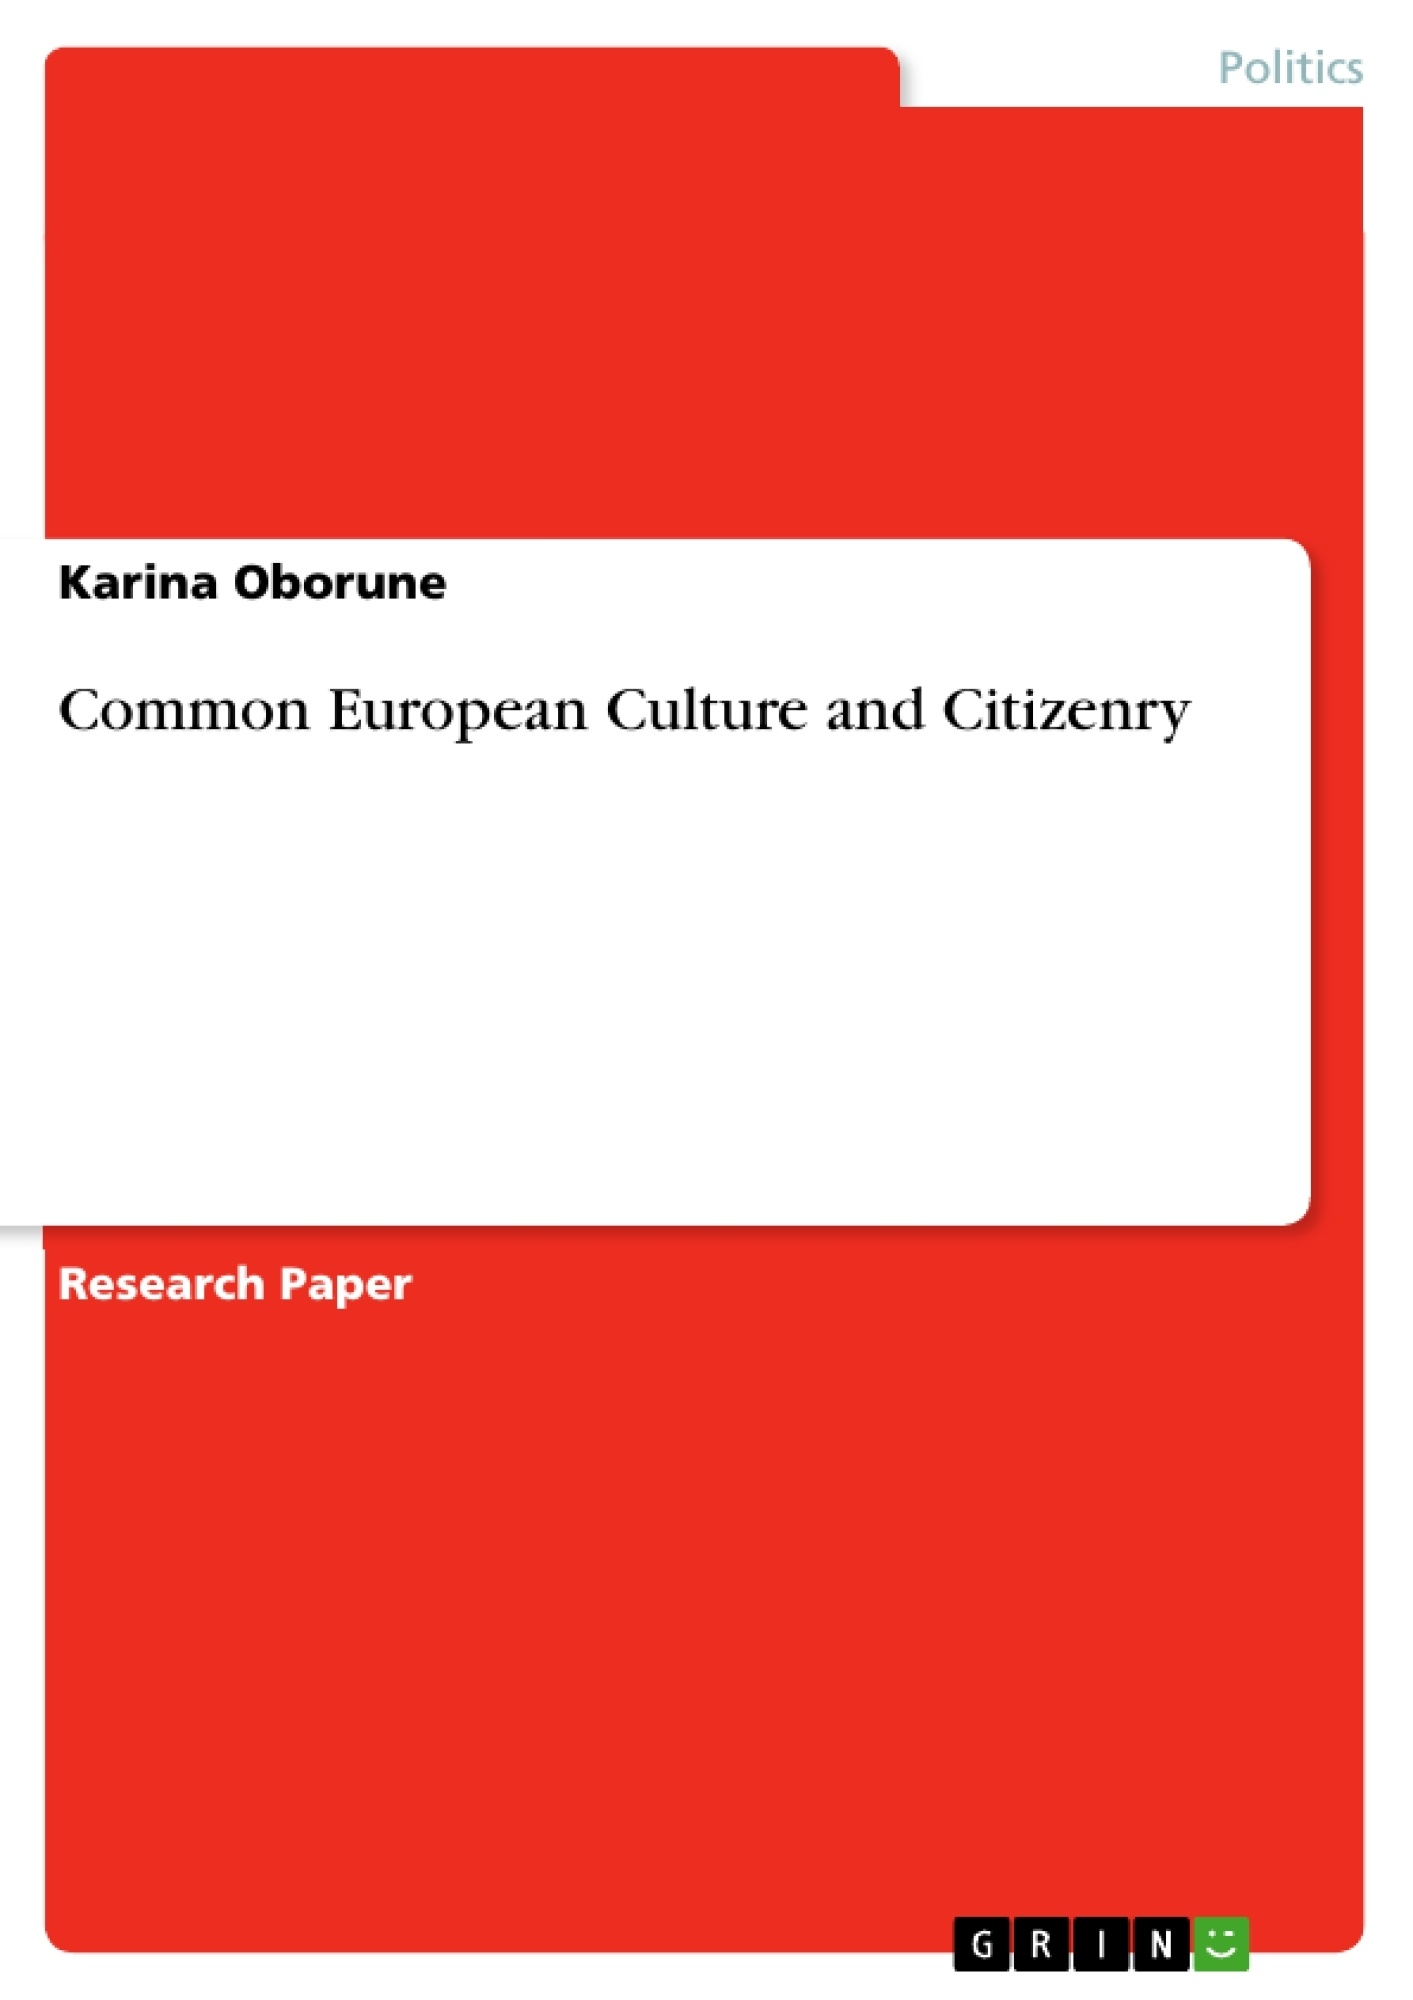 Title: Common European Culture and Citizenry